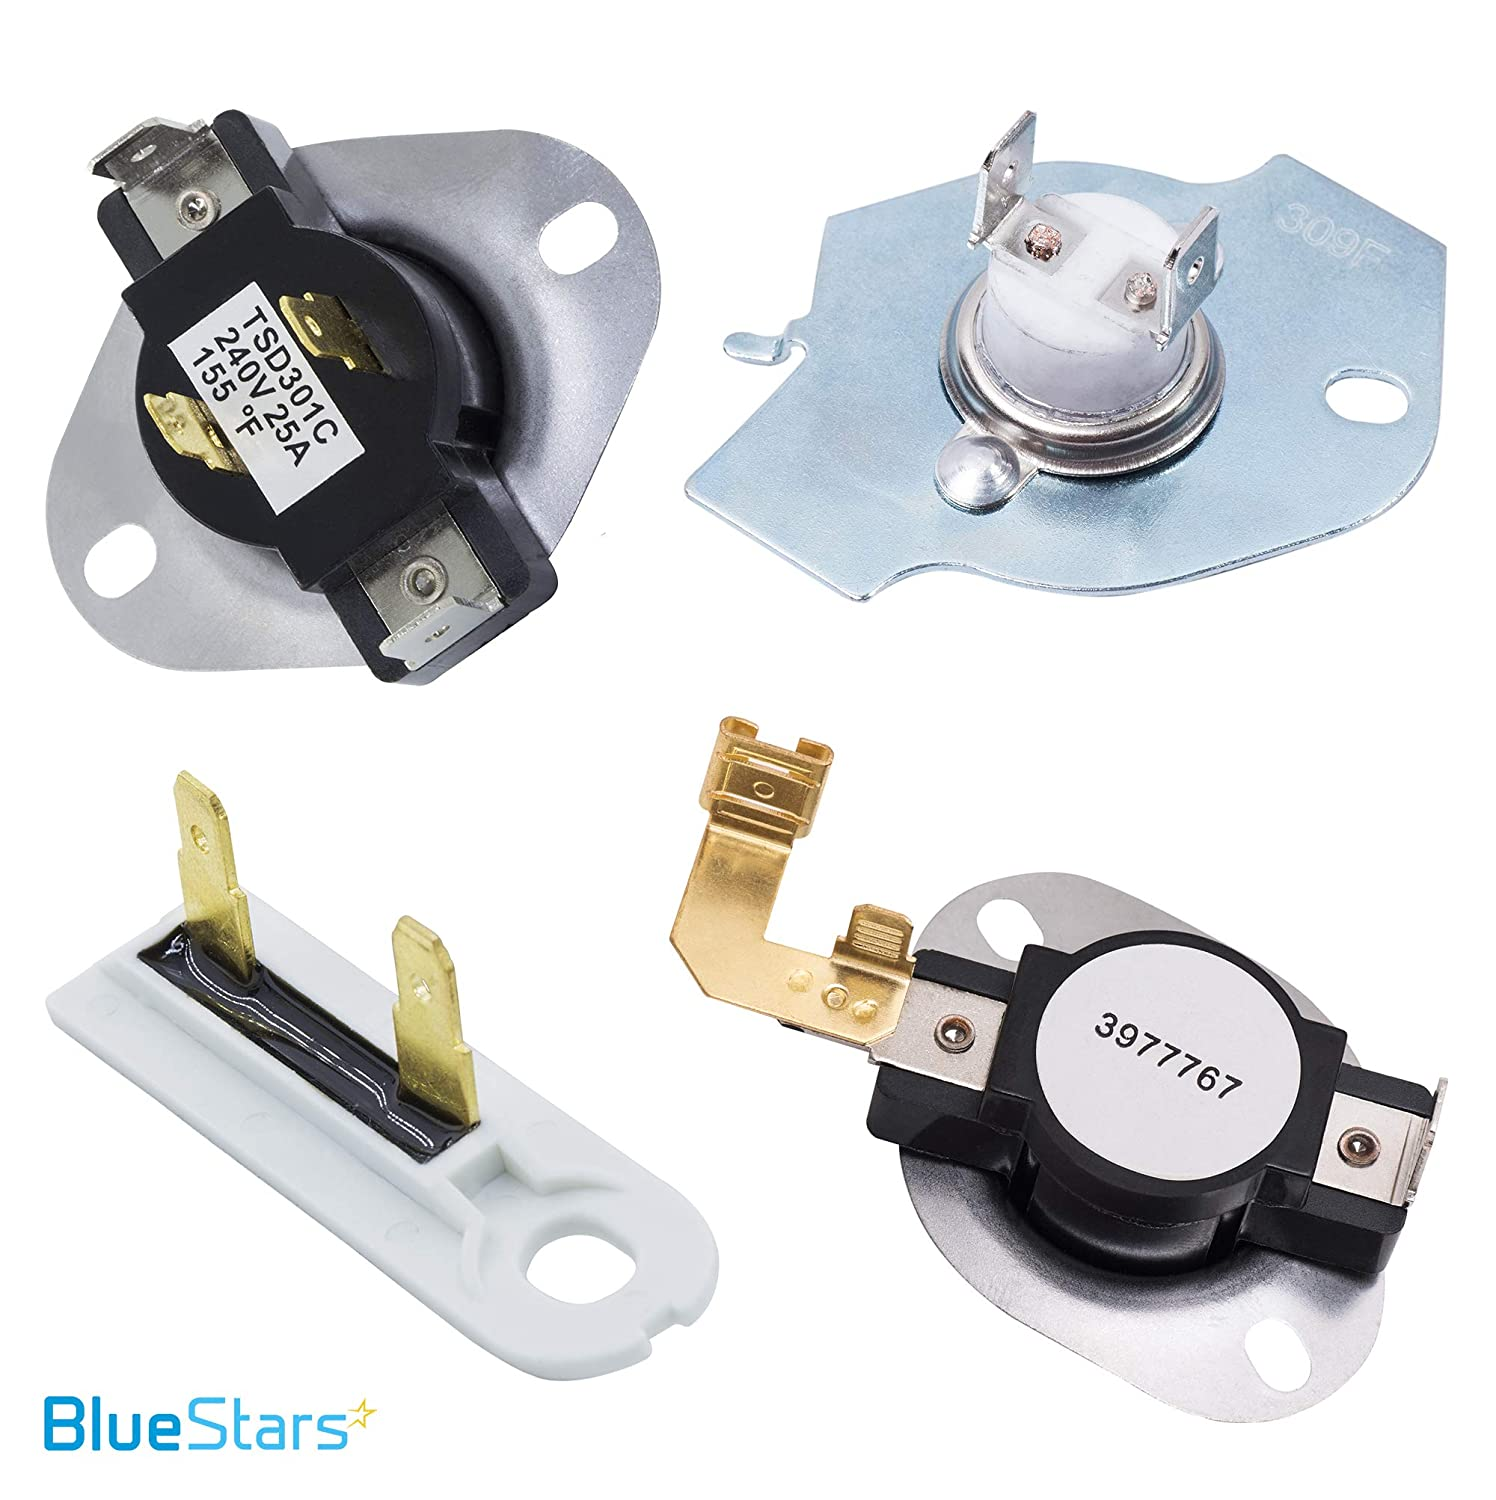 3387134 /& 3392519 /& 3977767 /& 3977393 Dryer Thermostat and Thermal Fuse Kit by Blue Stars Exact Fit for Whirlpool /& Kenmore Dryers